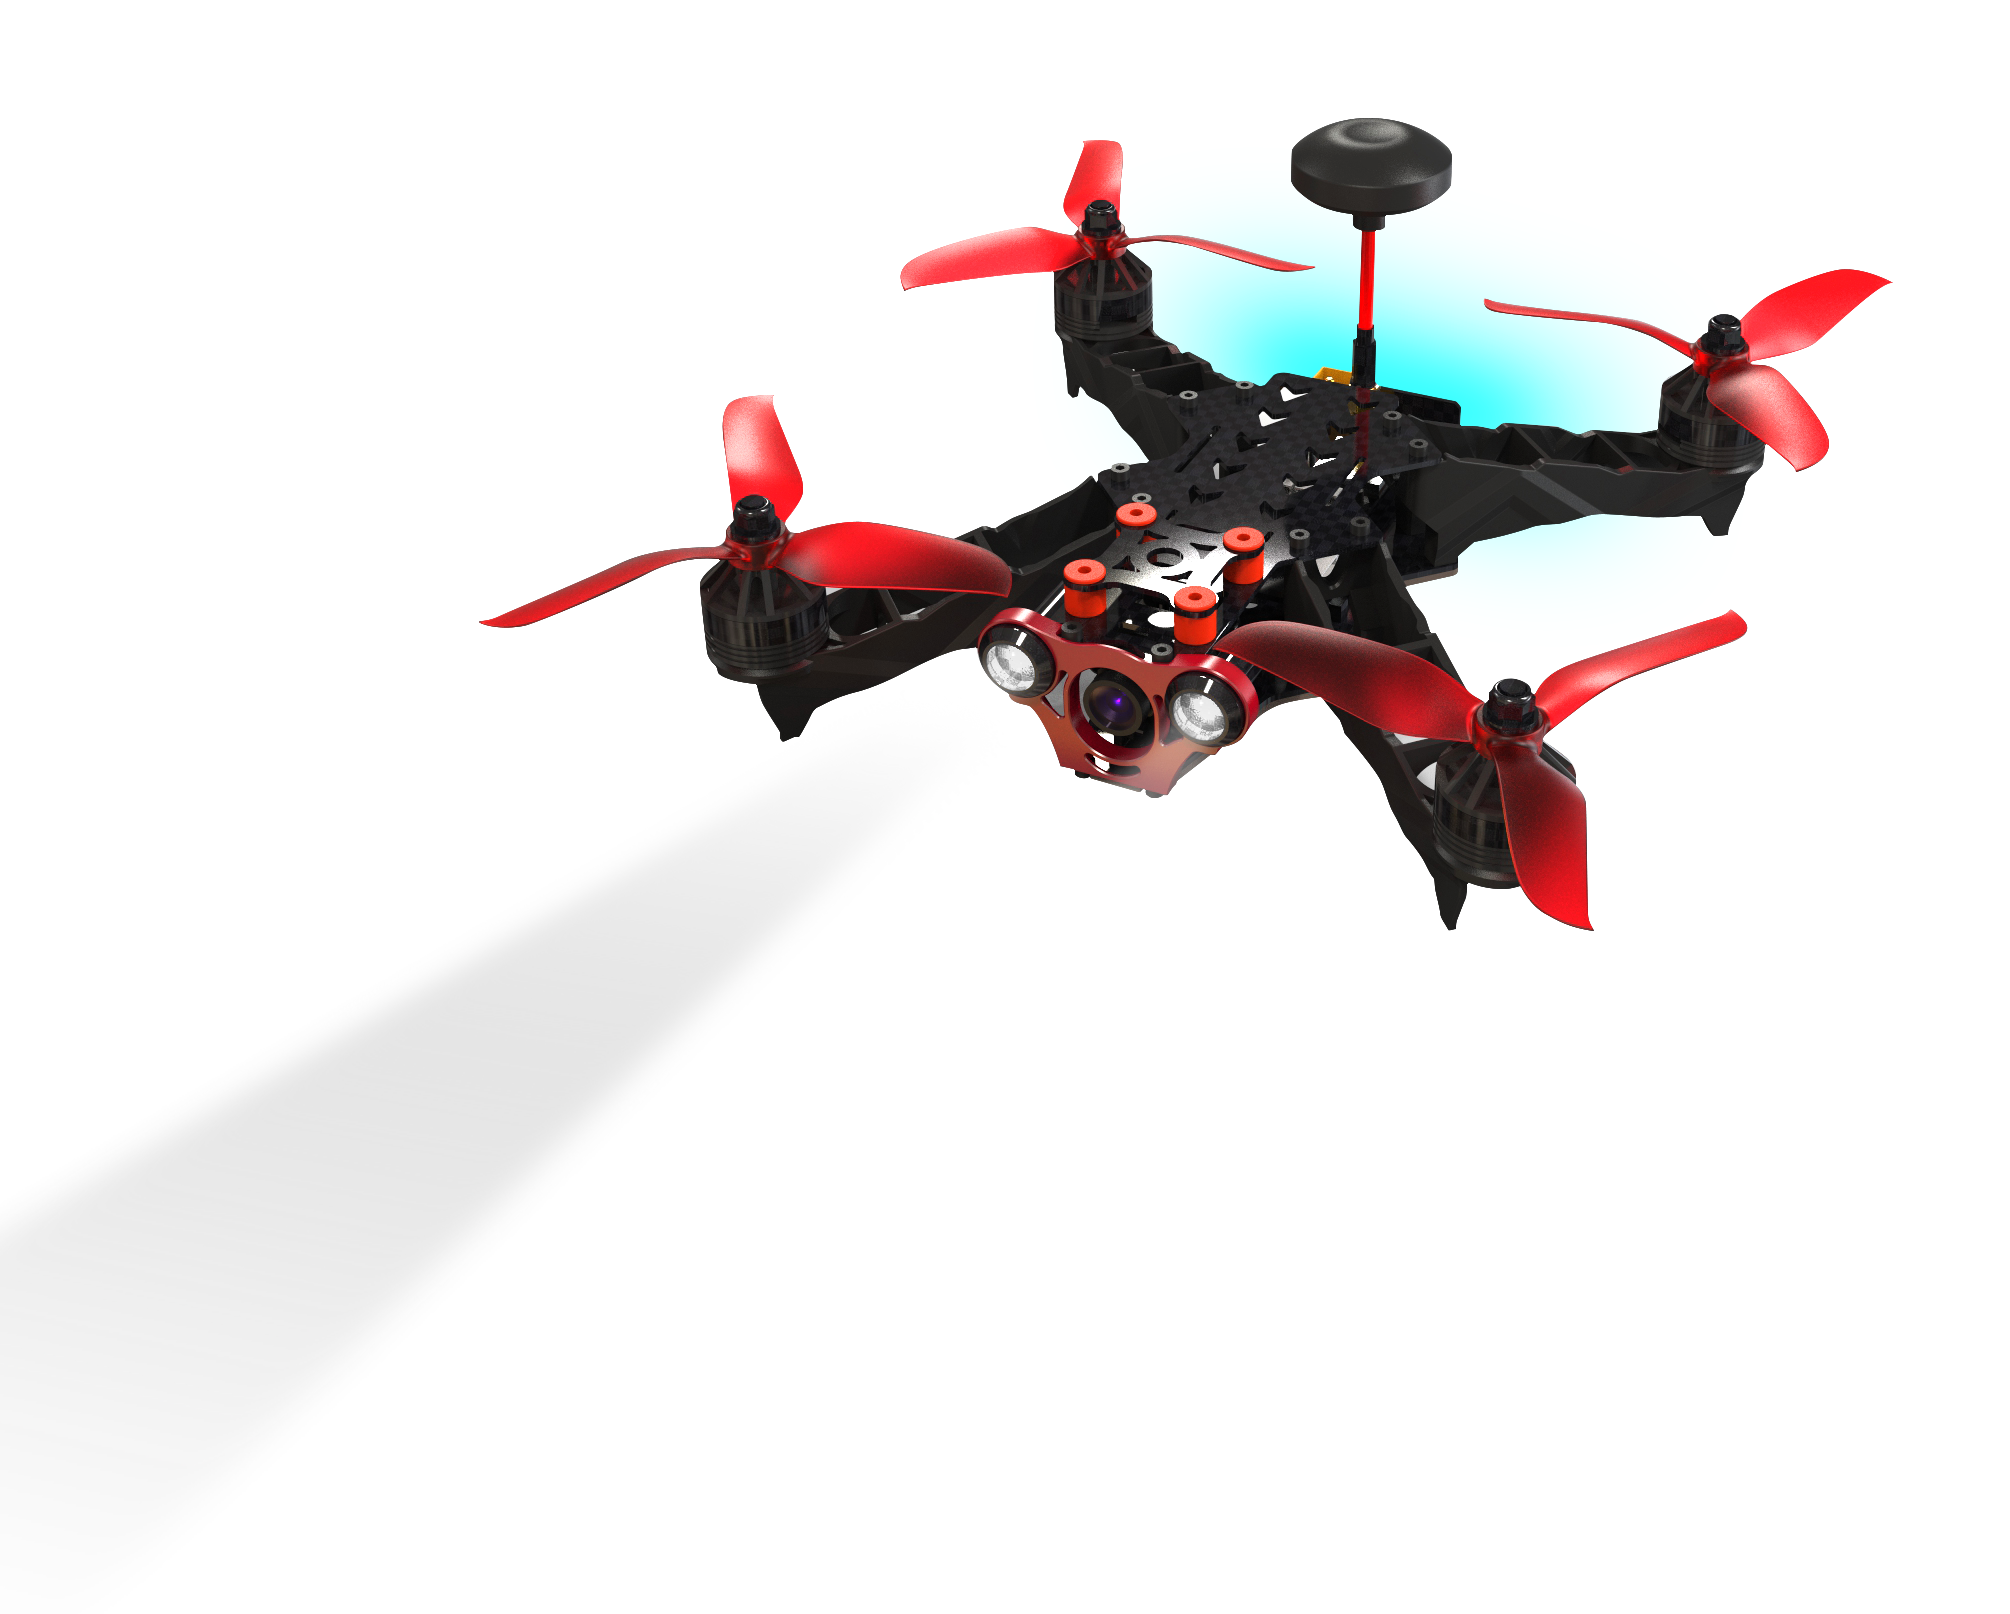 Racing 250 pro drone